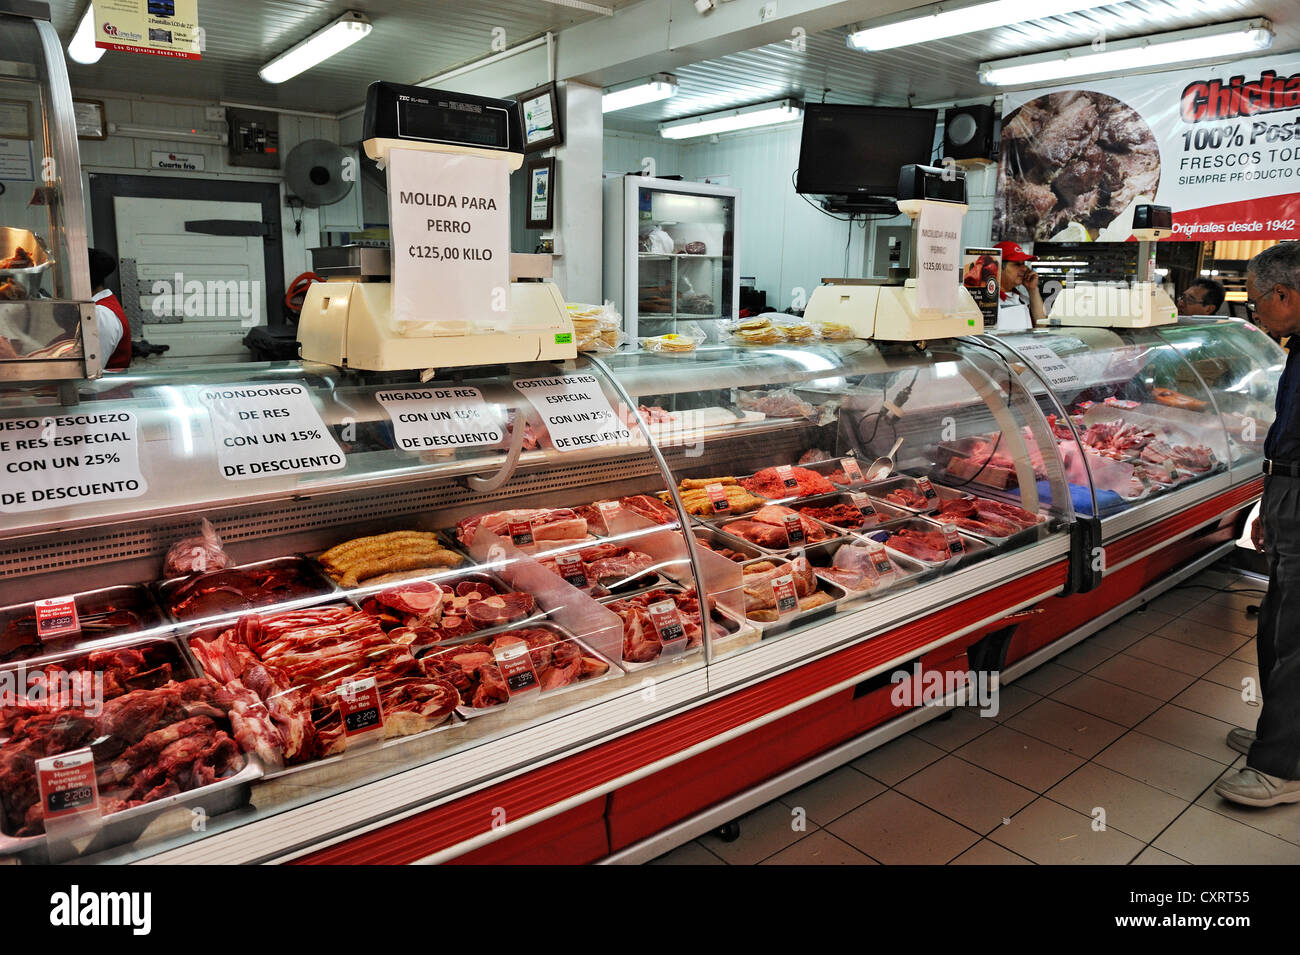 Meat counter at the Central Market, San José, Costa Rica, Central America - Stock Image